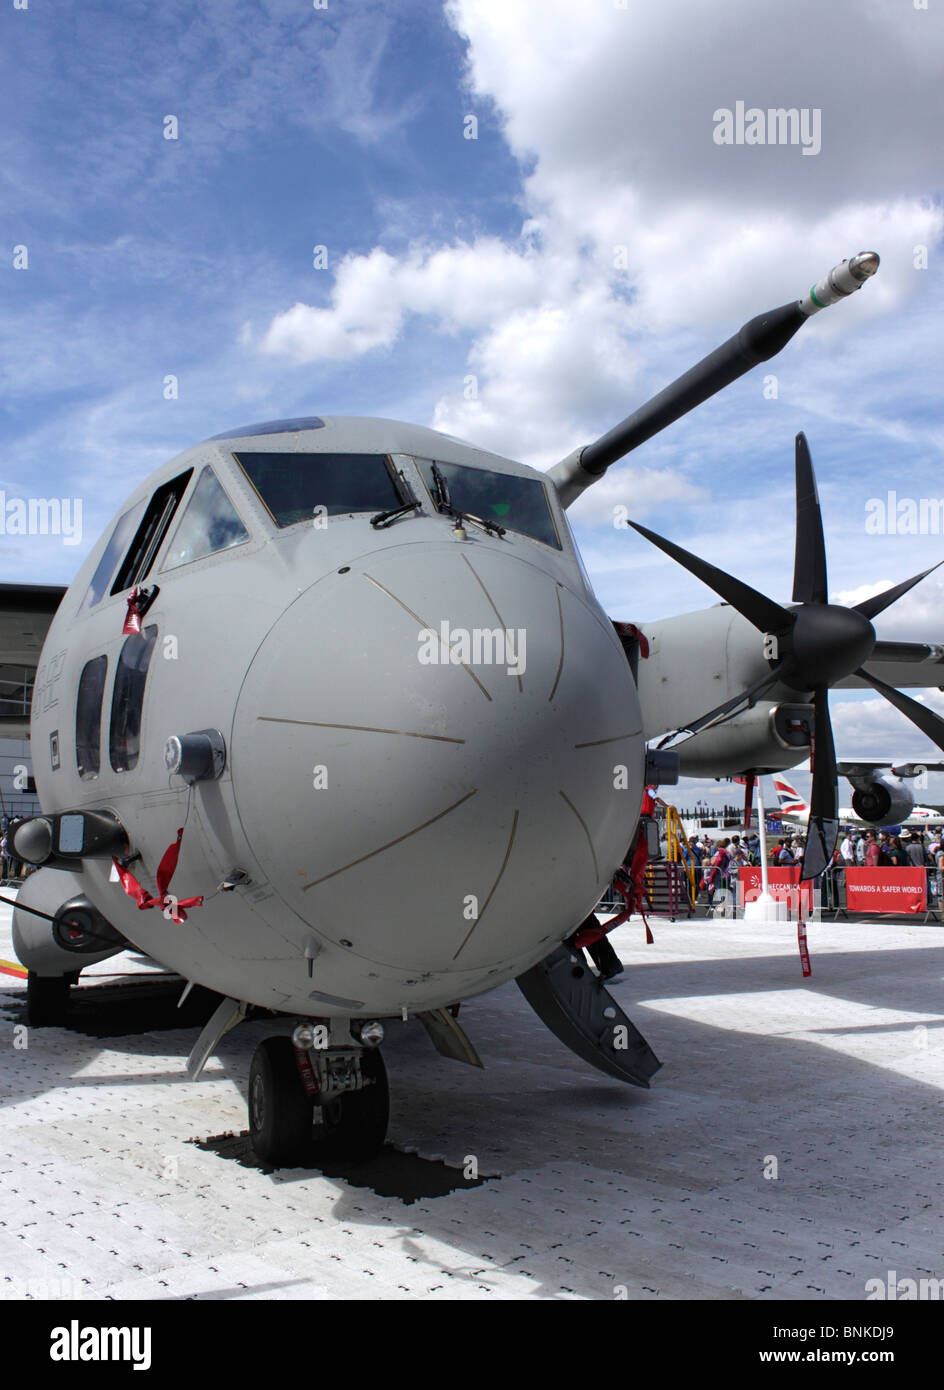 C27J Spartan airlifter on display at the Farnborough Airshow 2010 - Stock Image